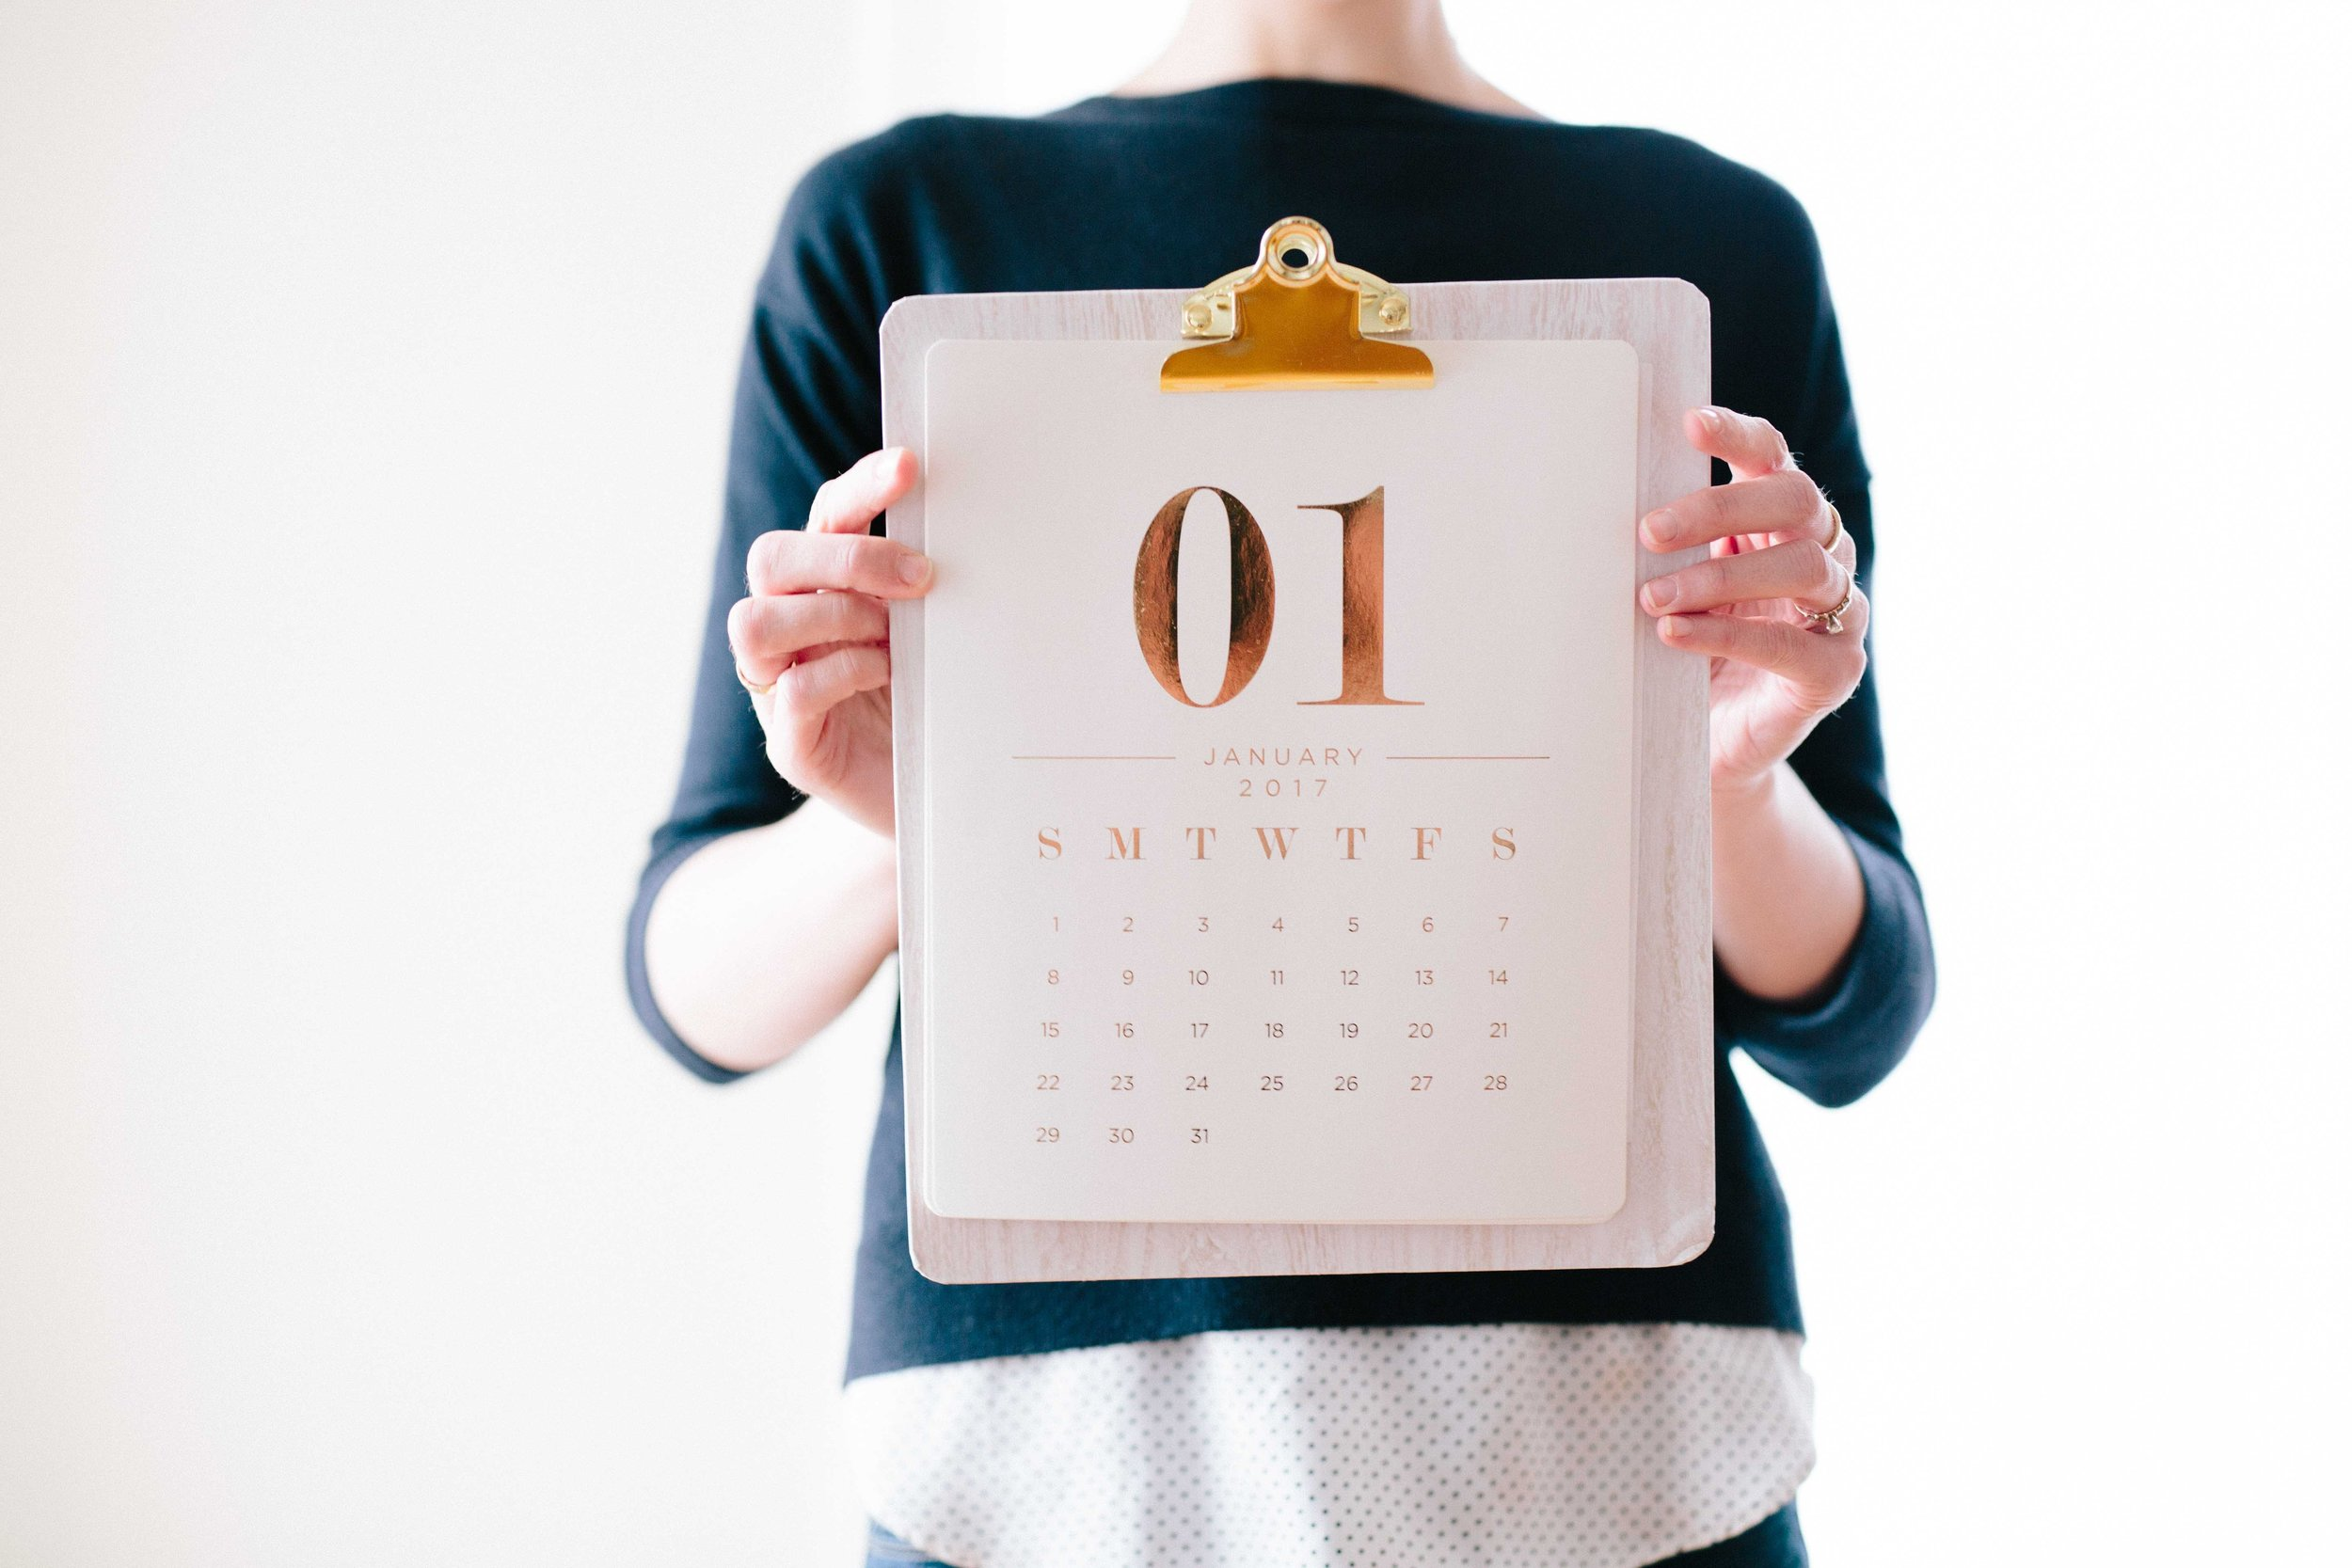 3 tips to get you off to the right start for the week - As the a new week begins we often need a bit of a pep-me-up to make sure we get through the week as energised as we started.